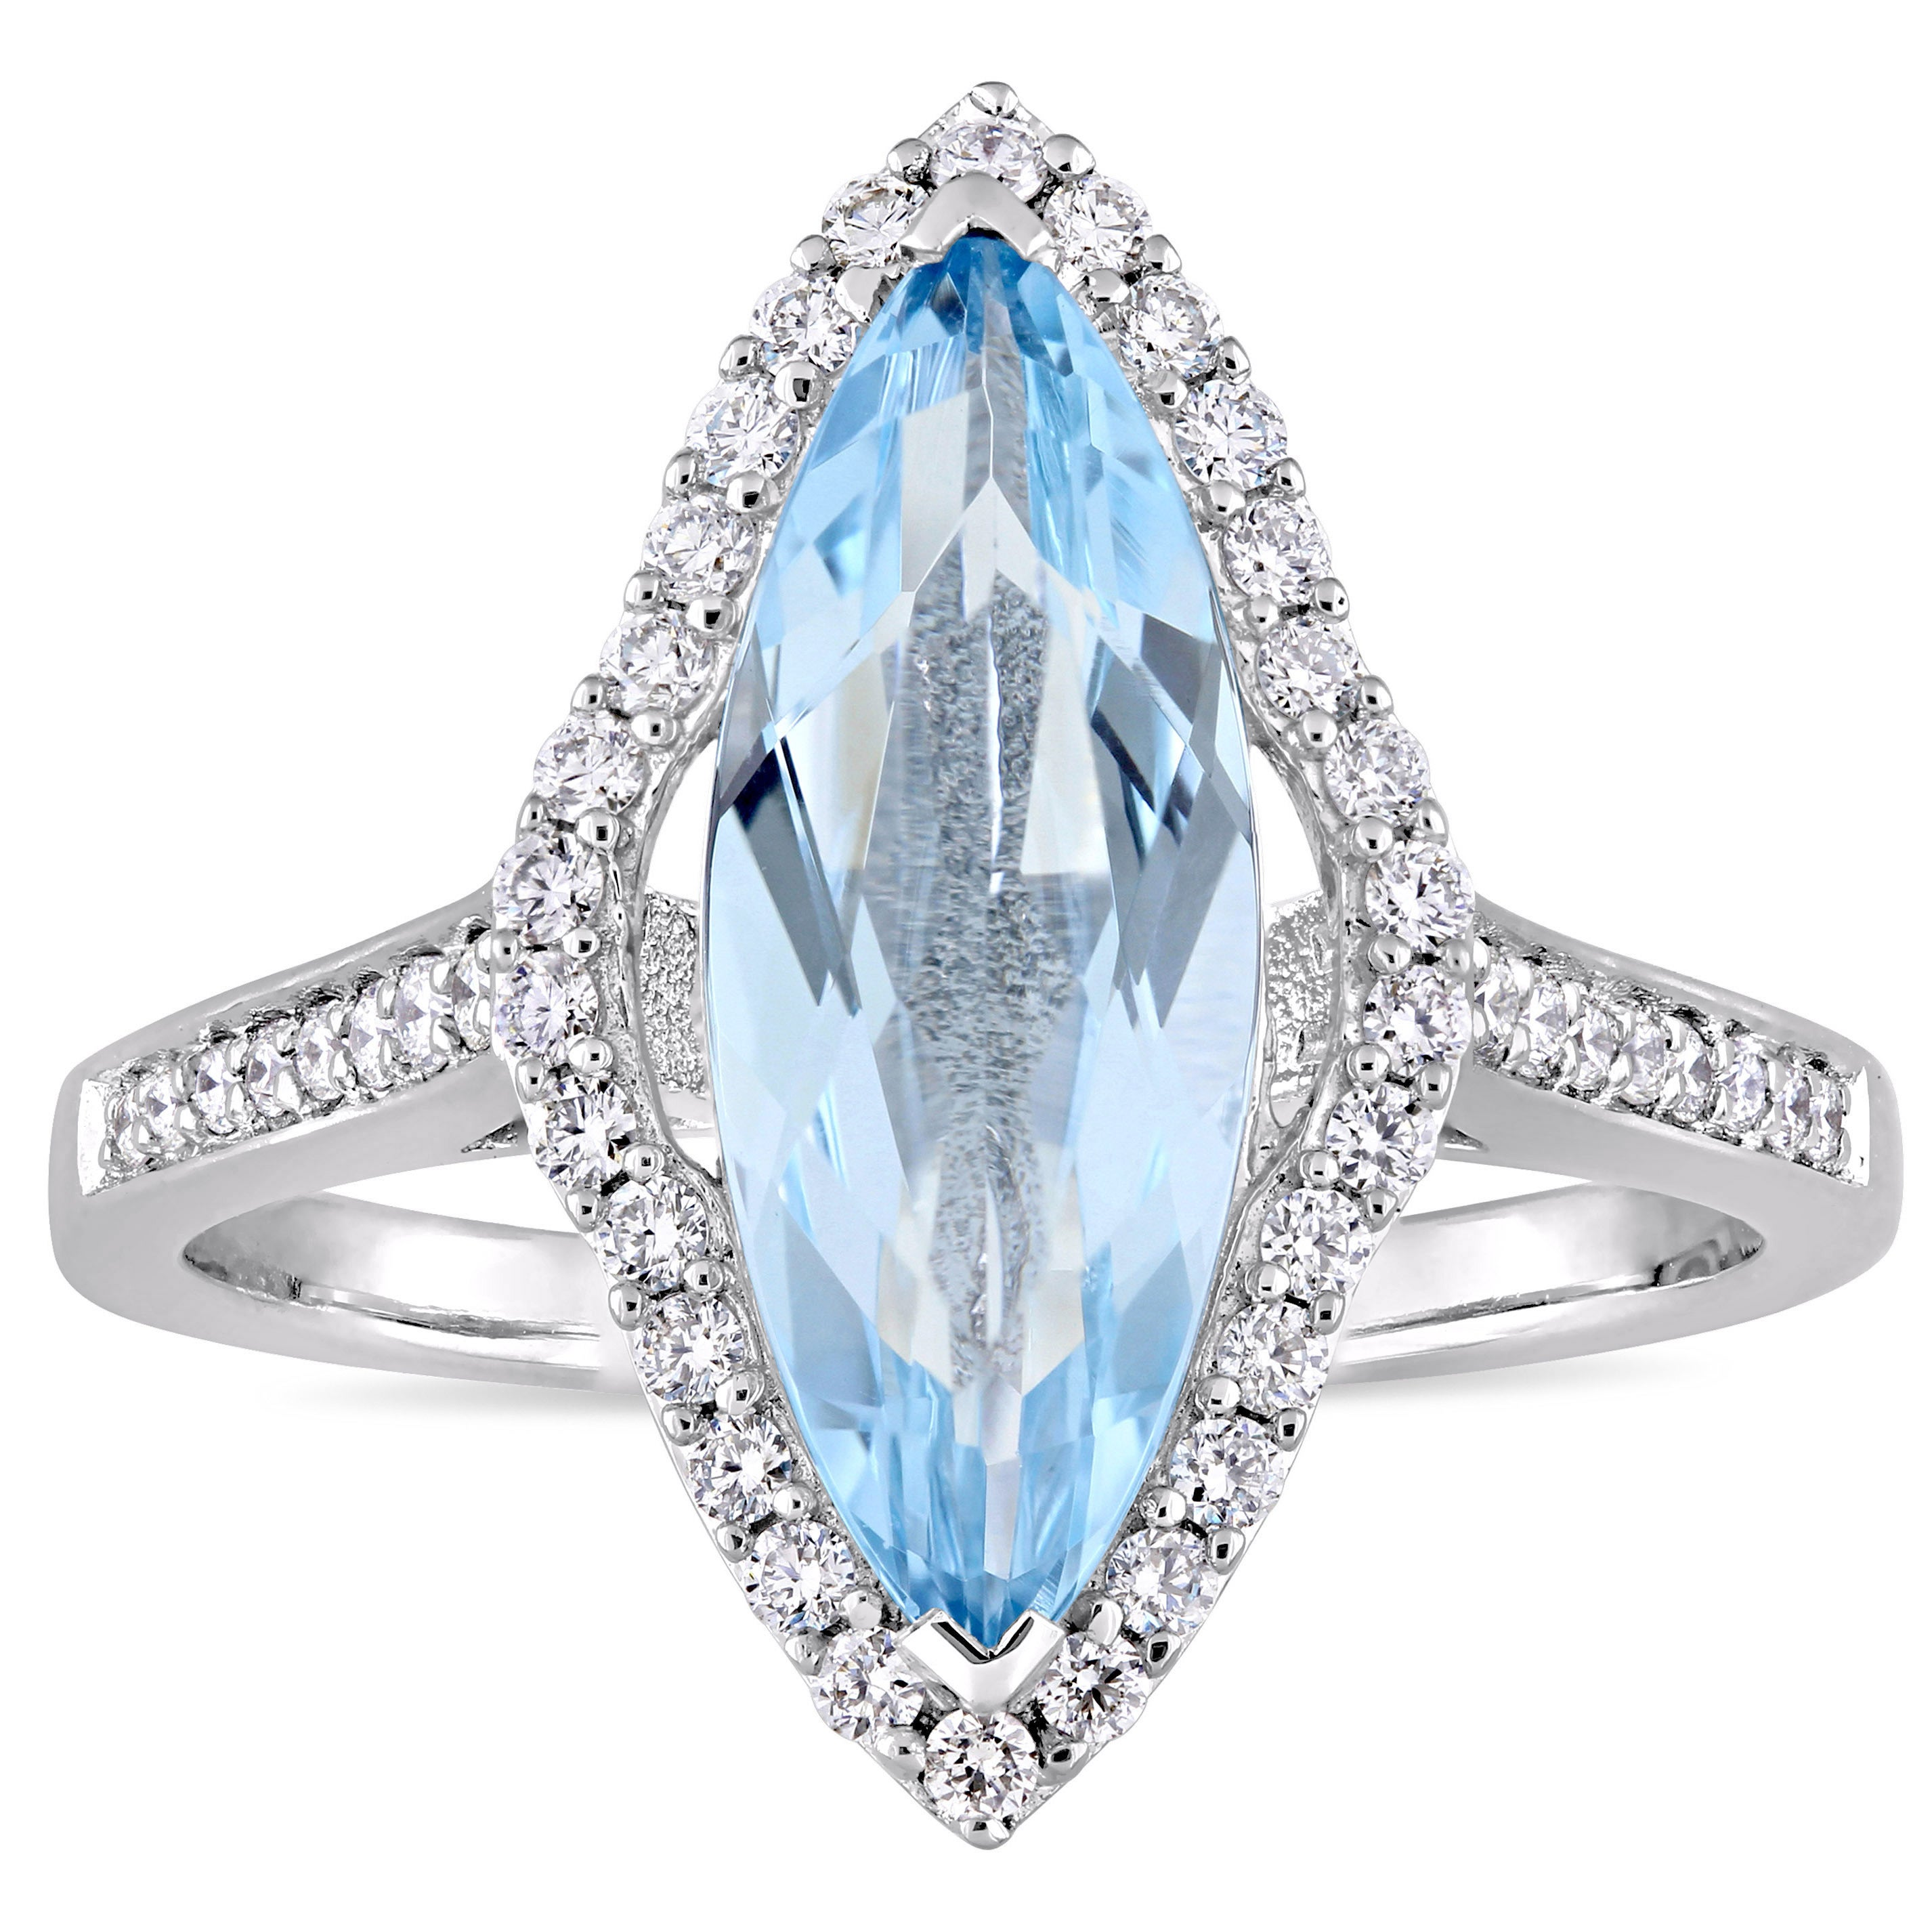 rau m ring estate aquamarine jewelry carat gemstone s image marquise antiques